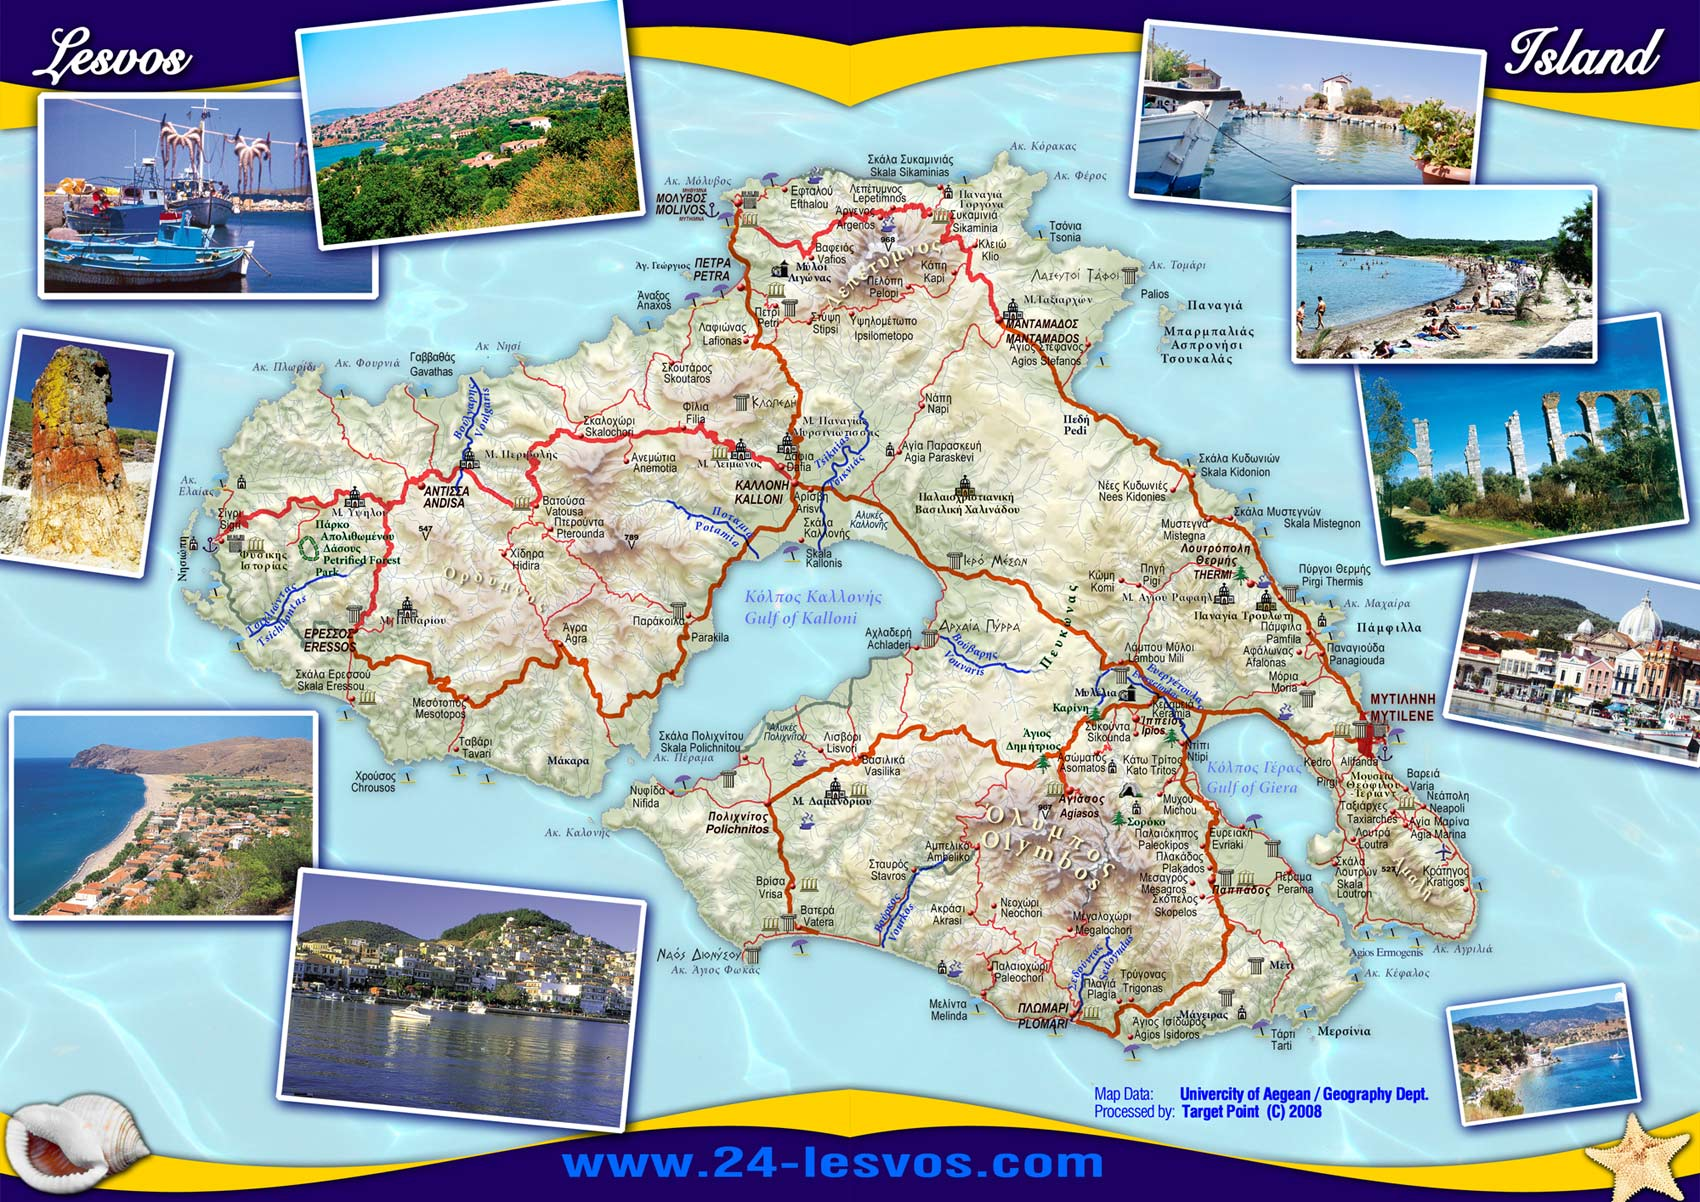 Lesvos Lesbos Tourist Map Lesvos Greece mappery – Tourist Attractions Map In Greece